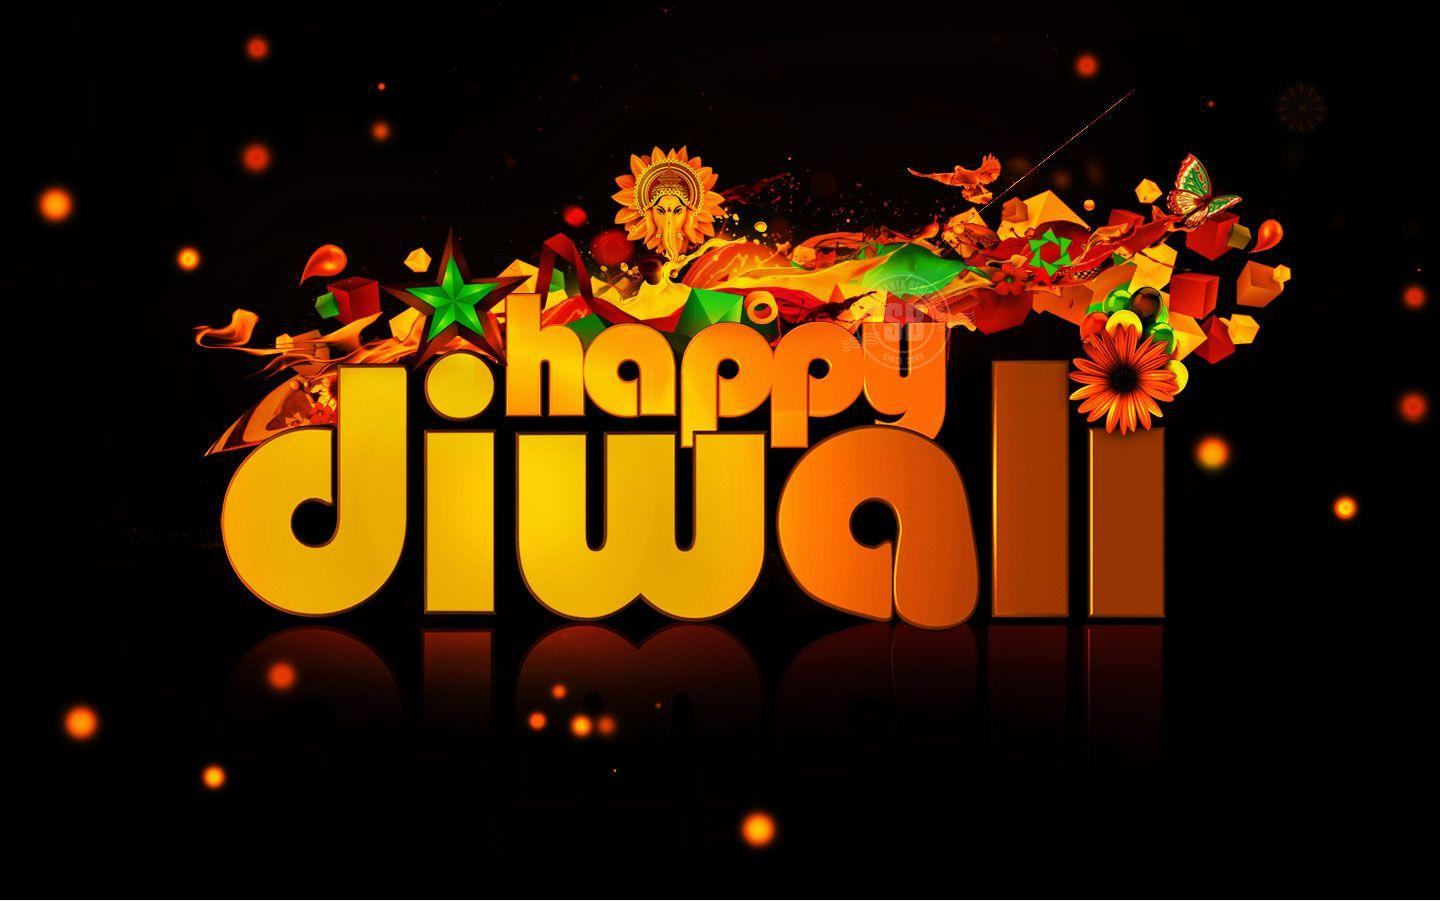 pictures deepavali greetings wallpapers - photo #18